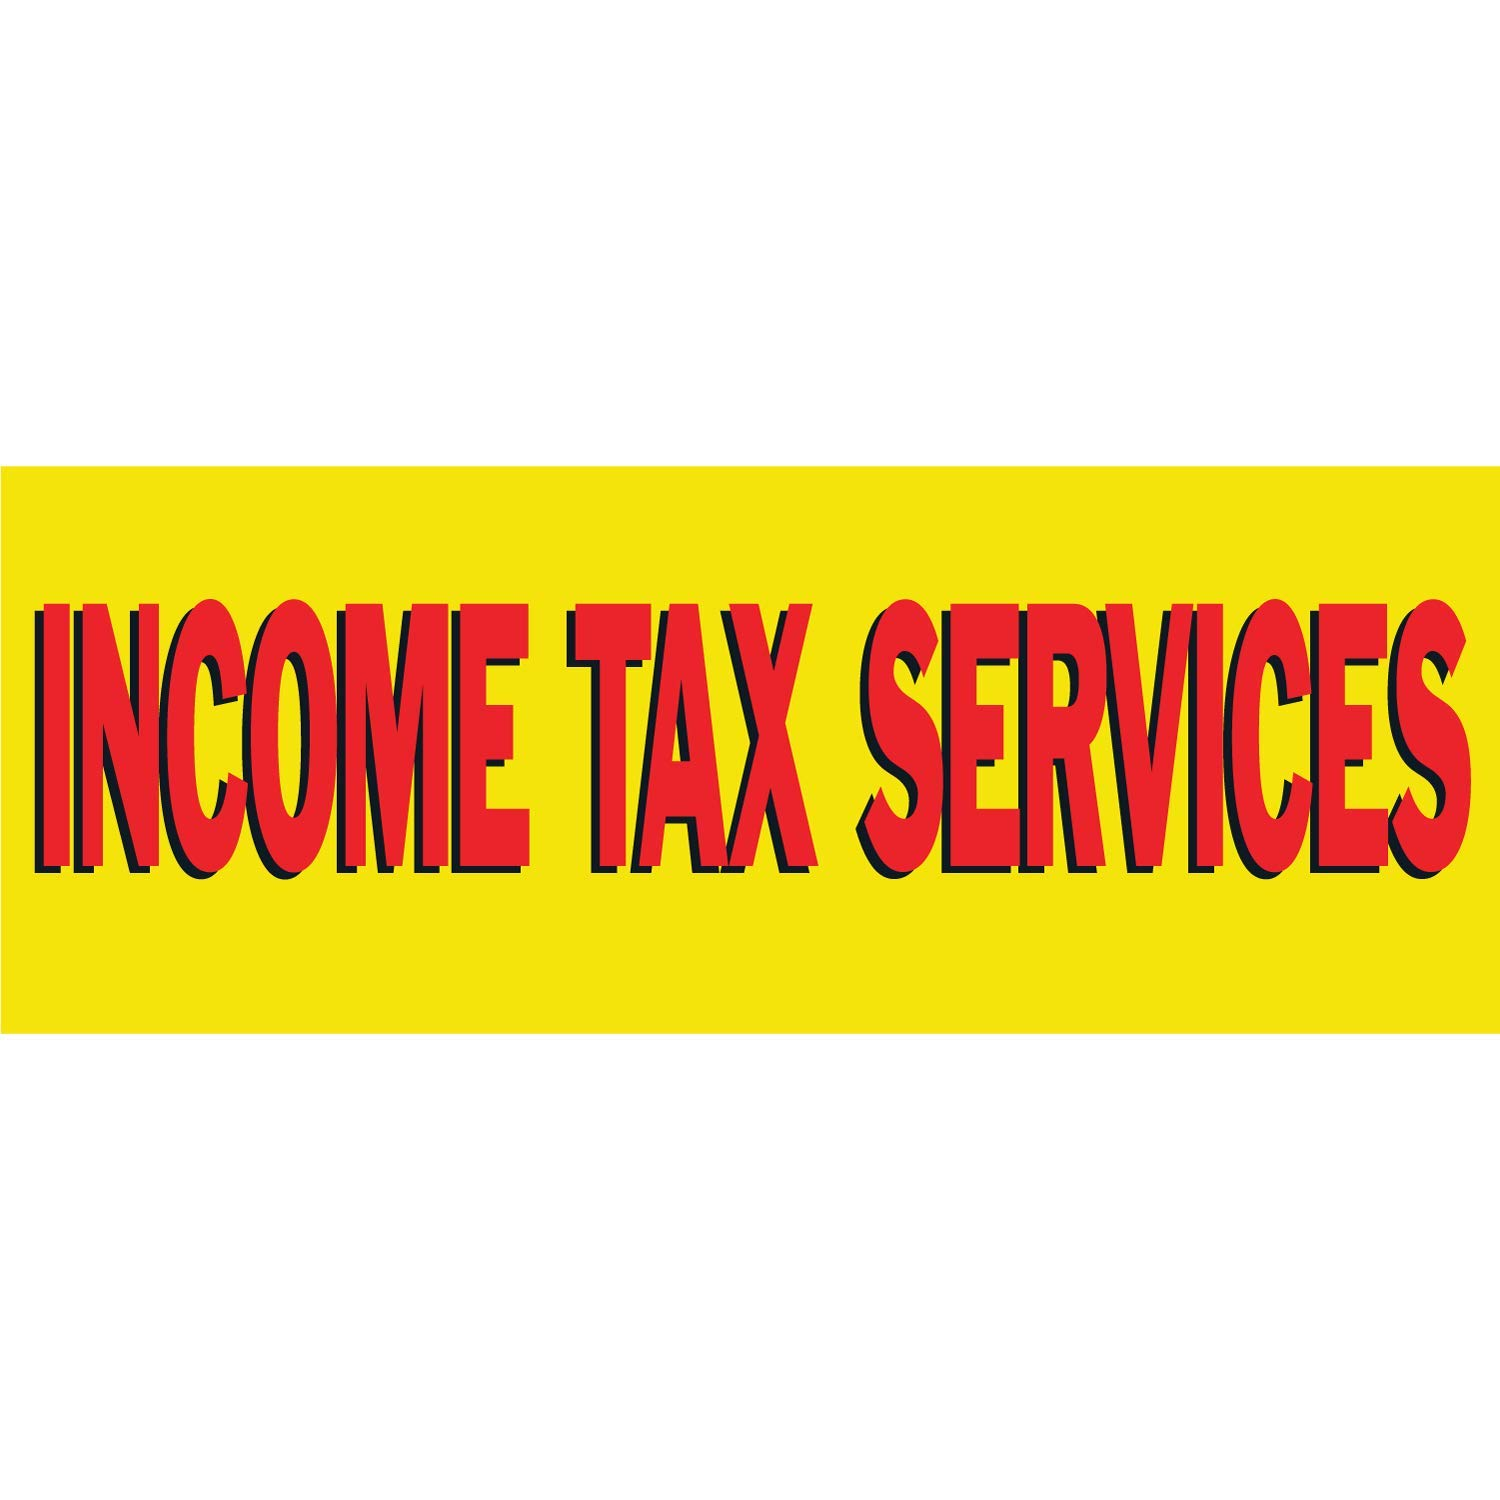 Includes Ball Bungees /& Zip Ties Income Tax Services Vinyl Banner-Heavy Duty Outdoor 4X8 Foot-Star Easy Hang Sign-Made in USA HALF PRICE BANNERS